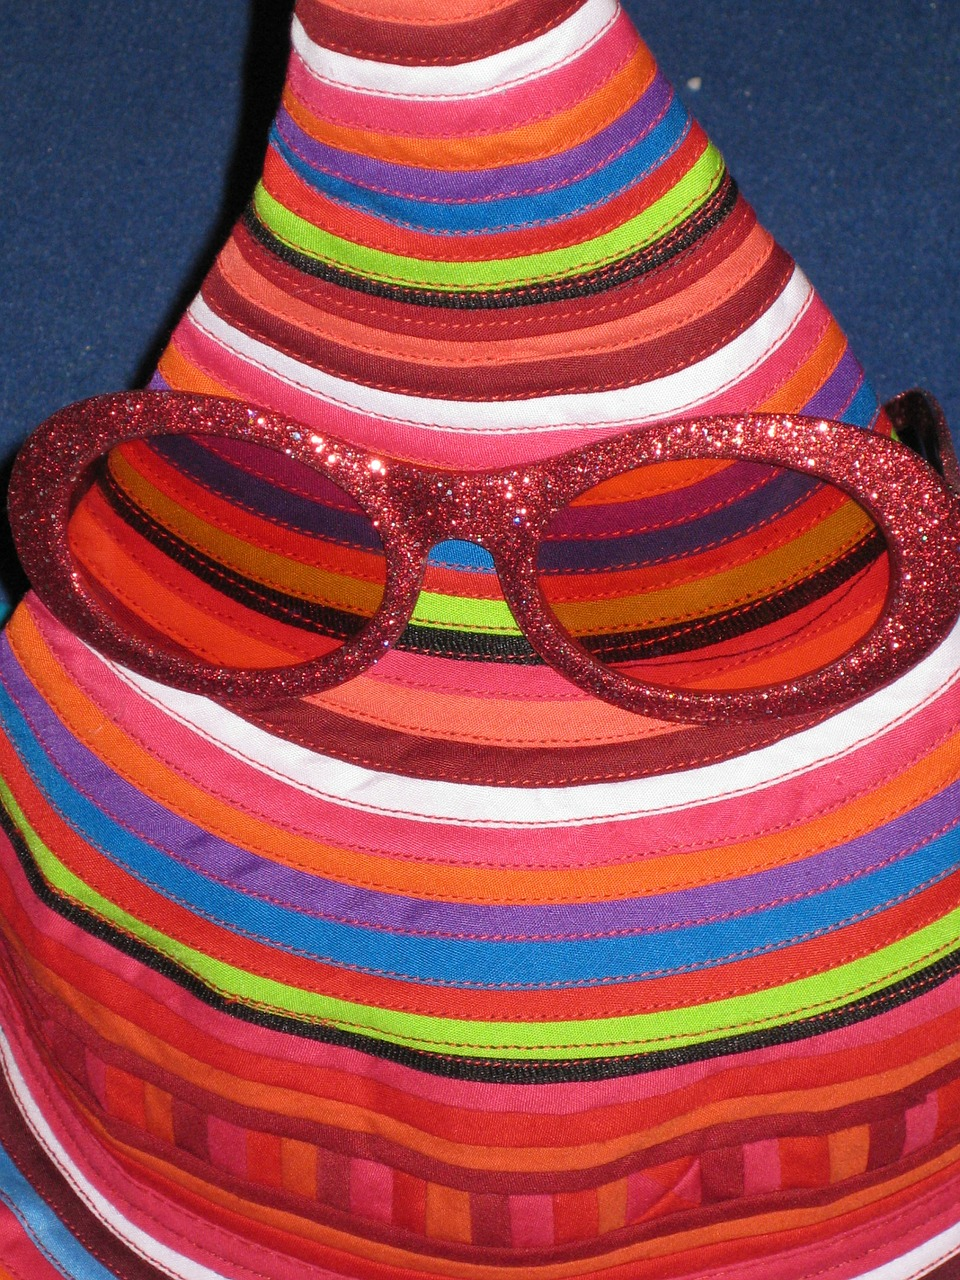 hat,colorful,color,glasses,pink,pink glasses,carnival,panel,free pictures, free photos, free images, royalty free, free illustrations, public domain